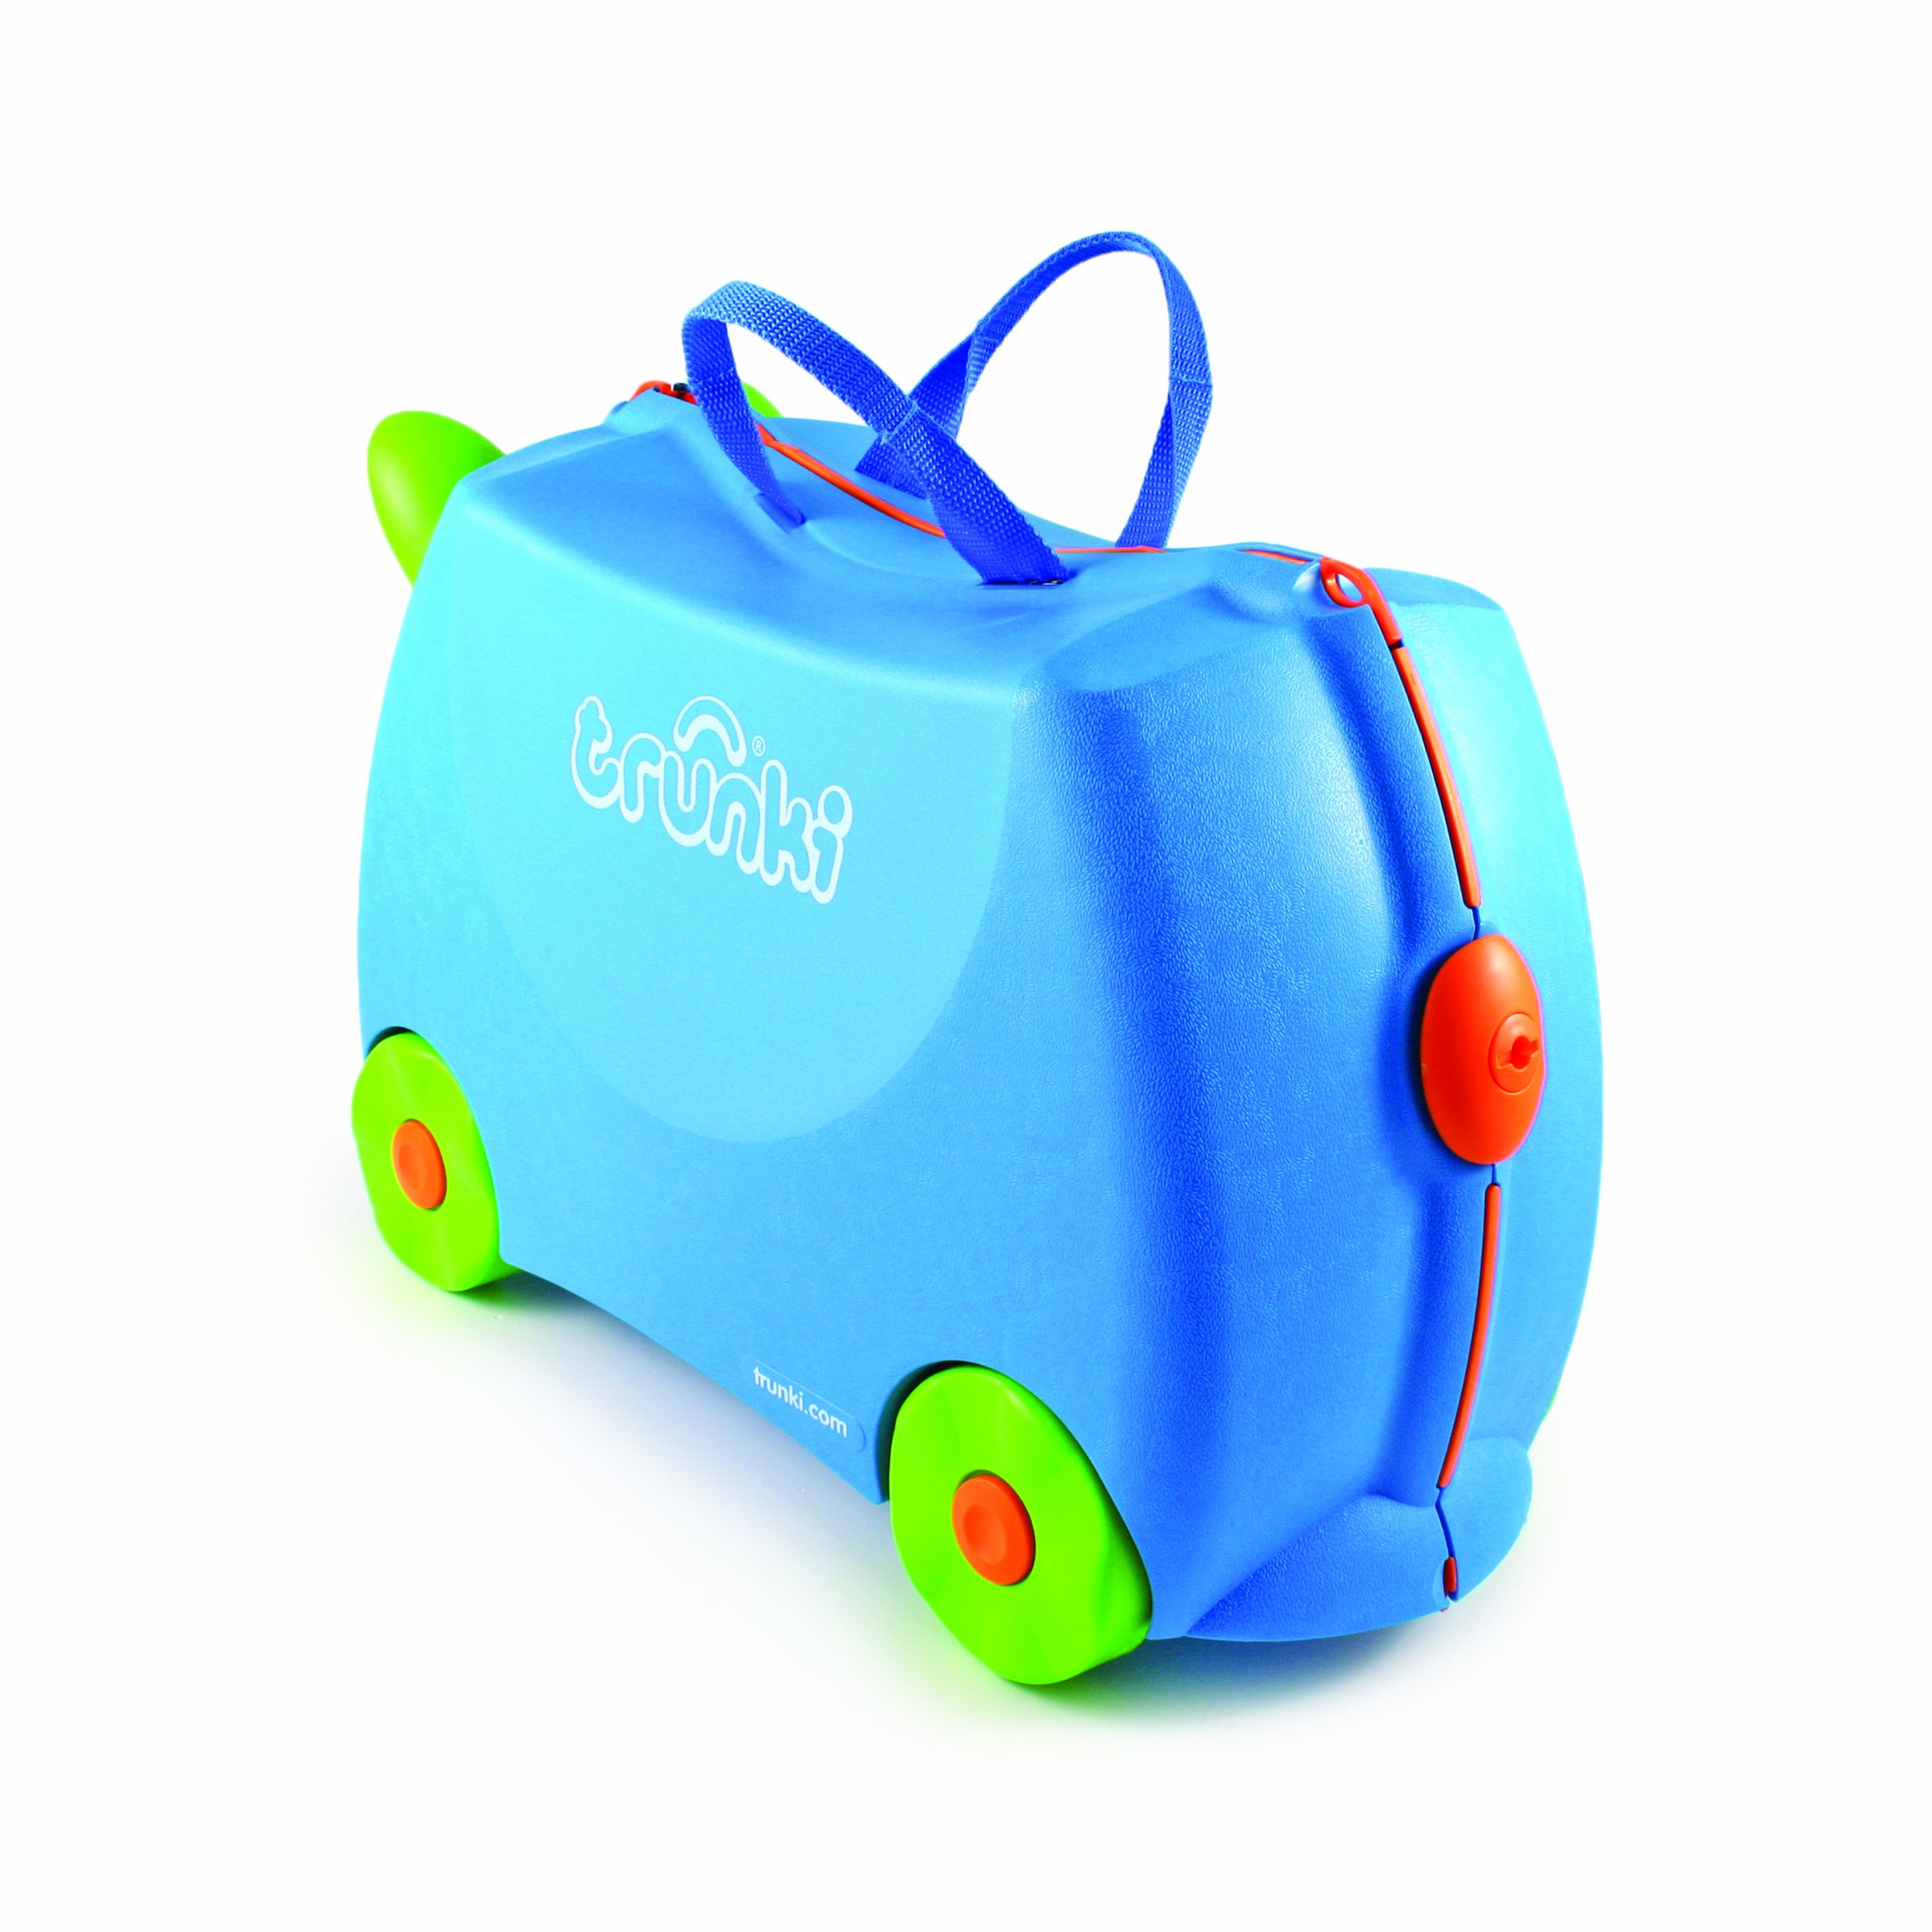 Trunki Original Kids Ride-On Suitcase and Carry-On Luggage - Terrance (Blue) by Trunki (Image #9)